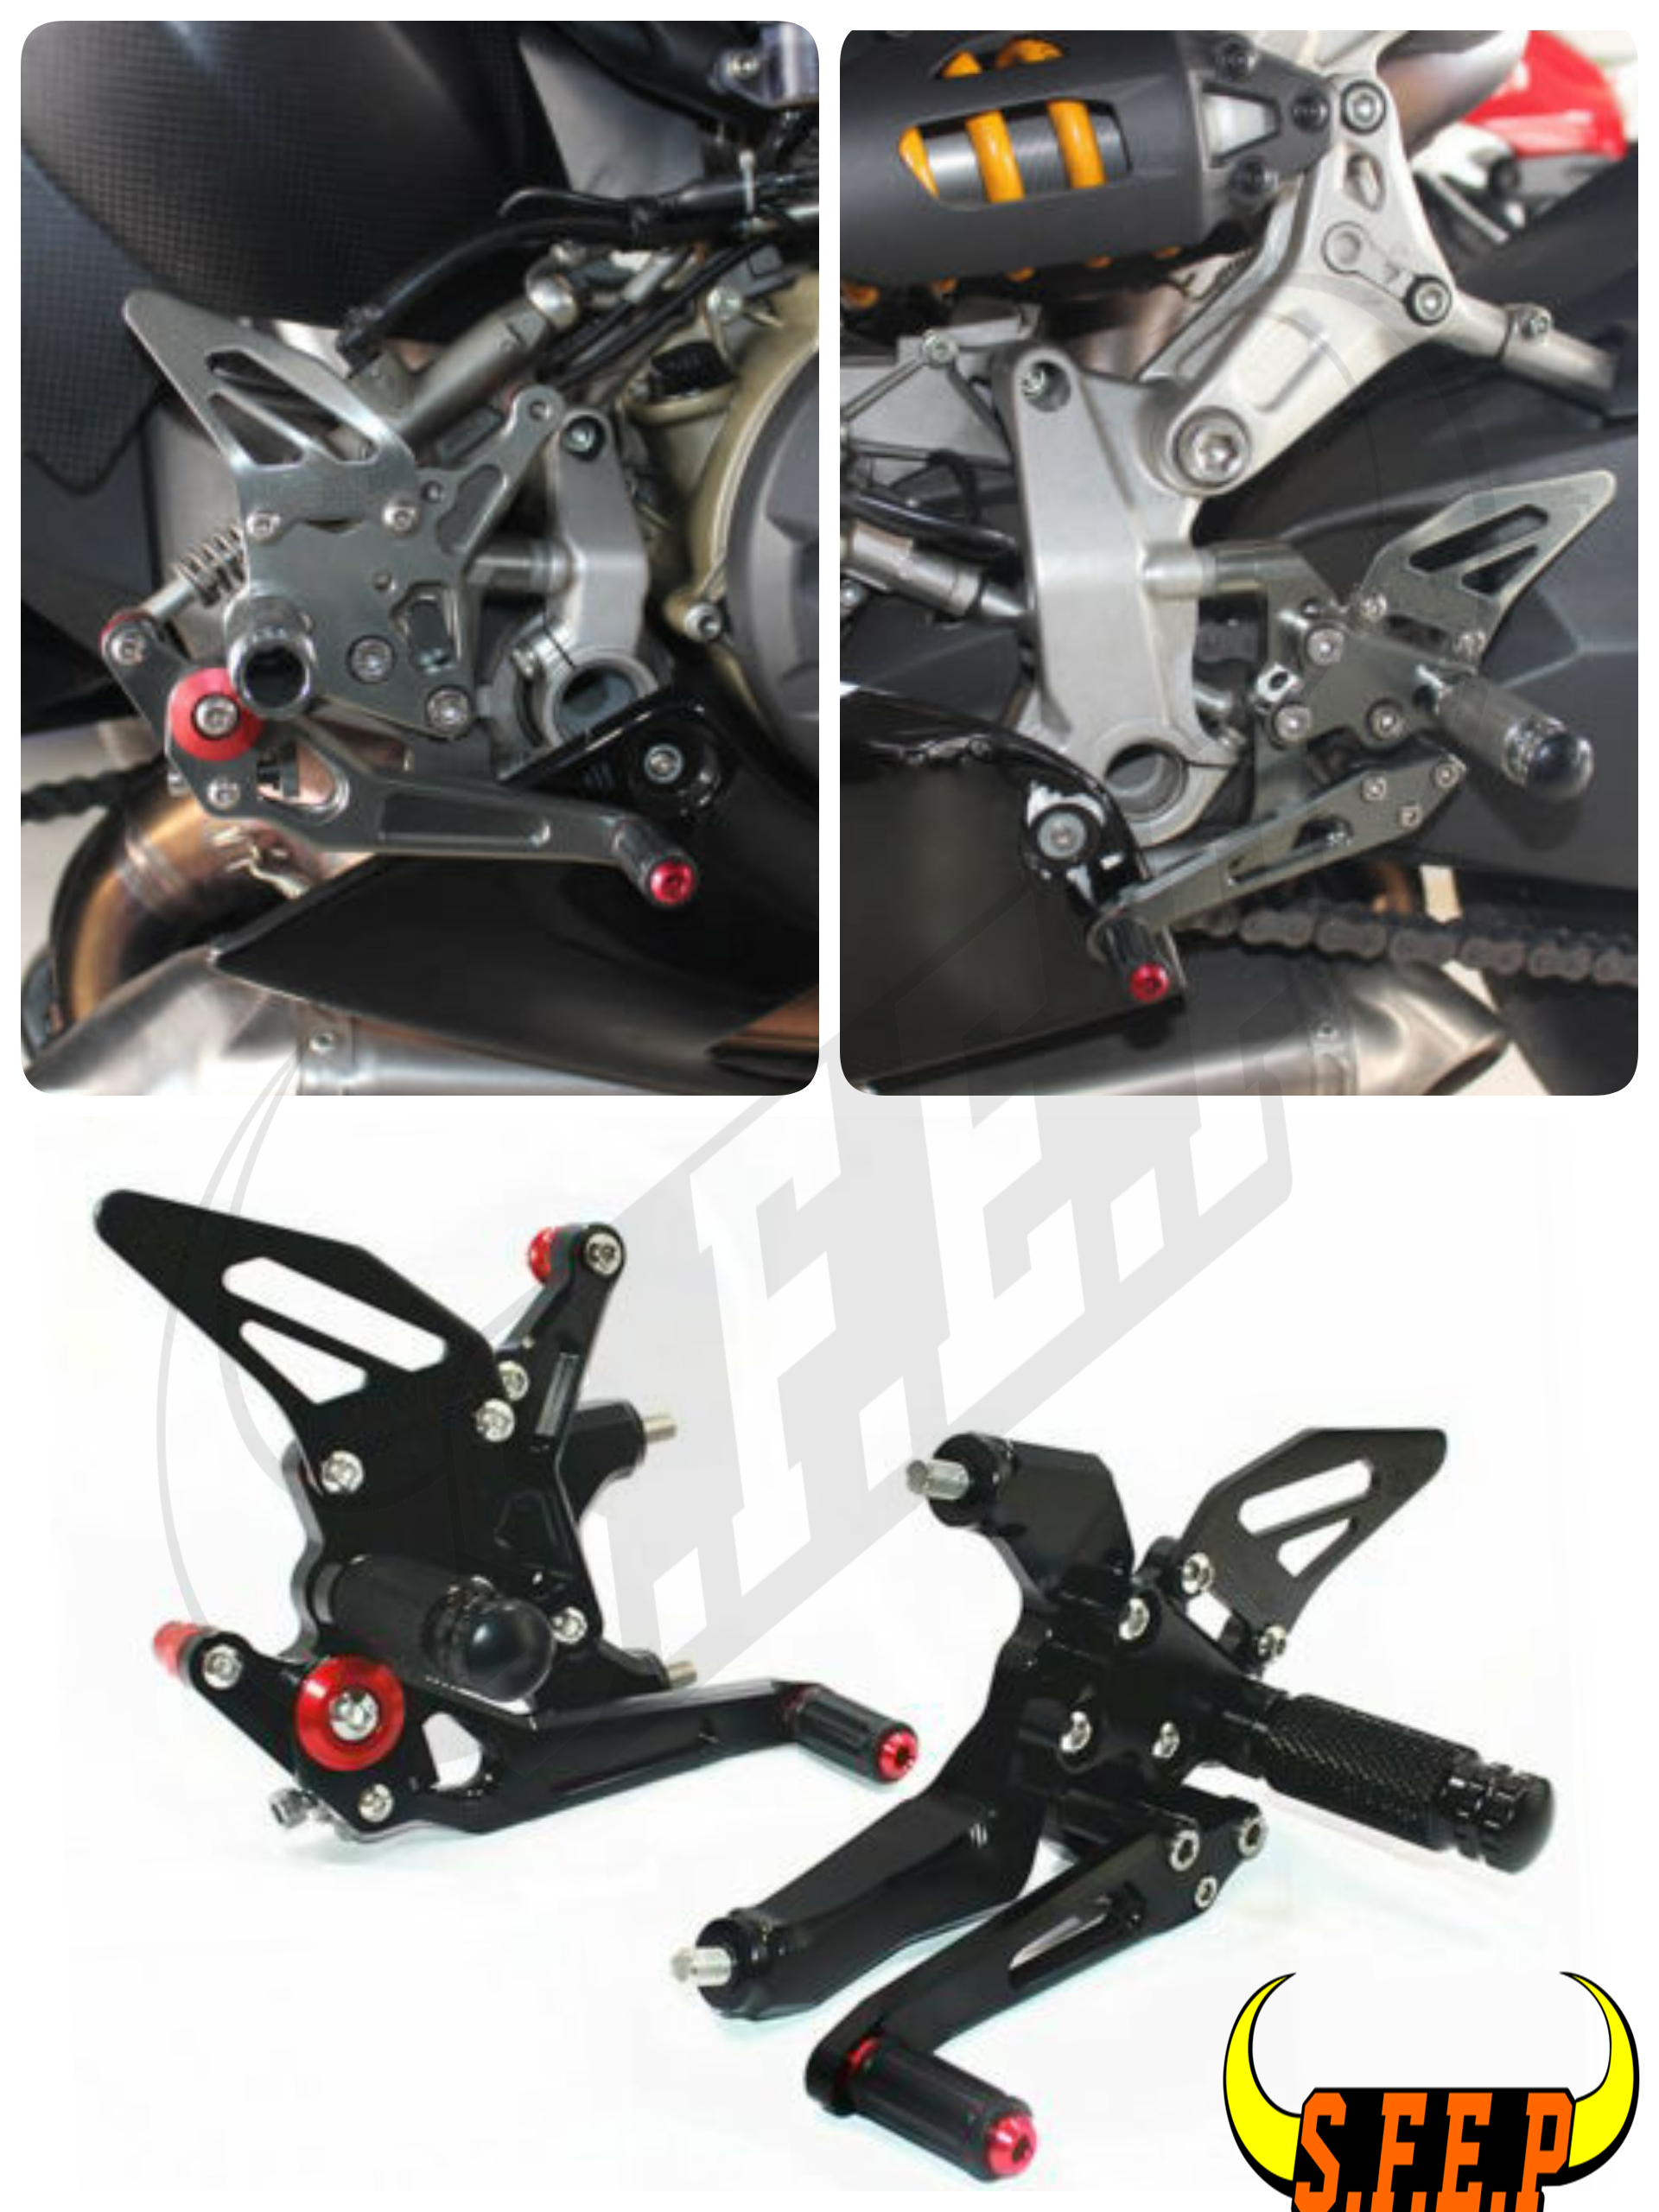 CNC Adjustable Rearset Foot Pegs Rest Pedal For Ducati 899 Panigale 2014-2015 / 1199 Panigale 2012-2013-2014-2015